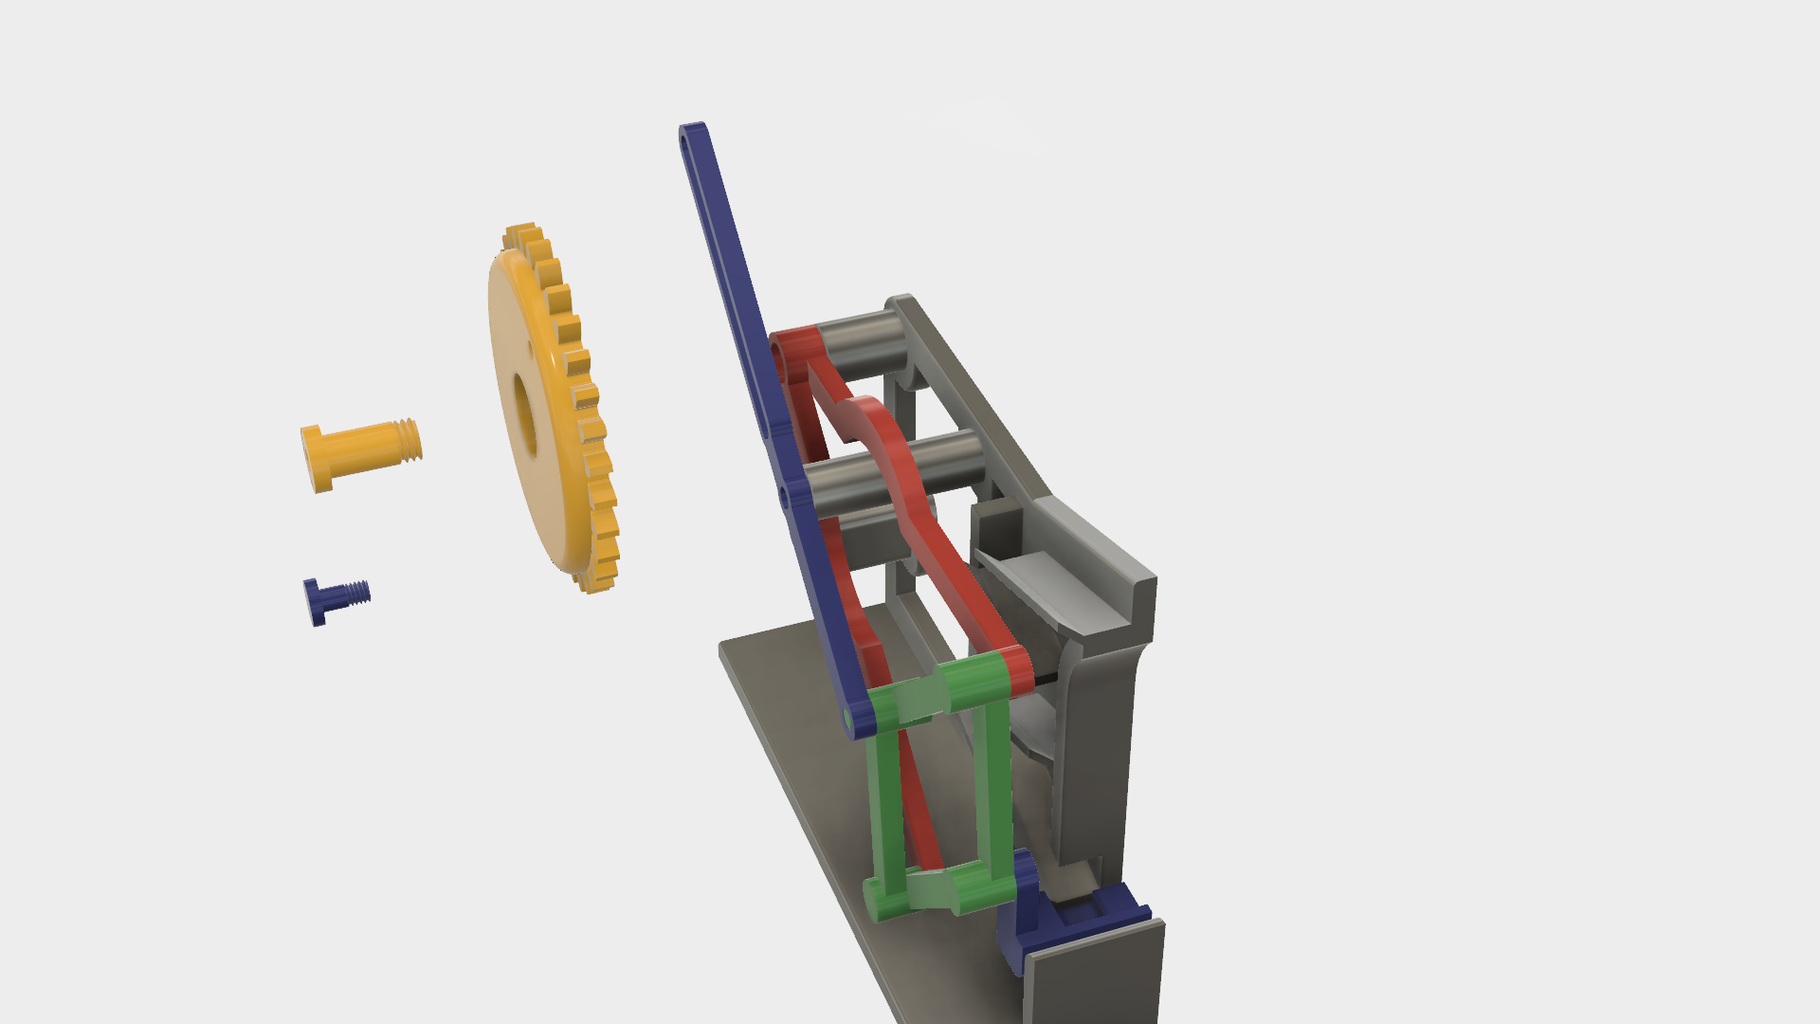 Attach the Mechanism Assembly to the Base.